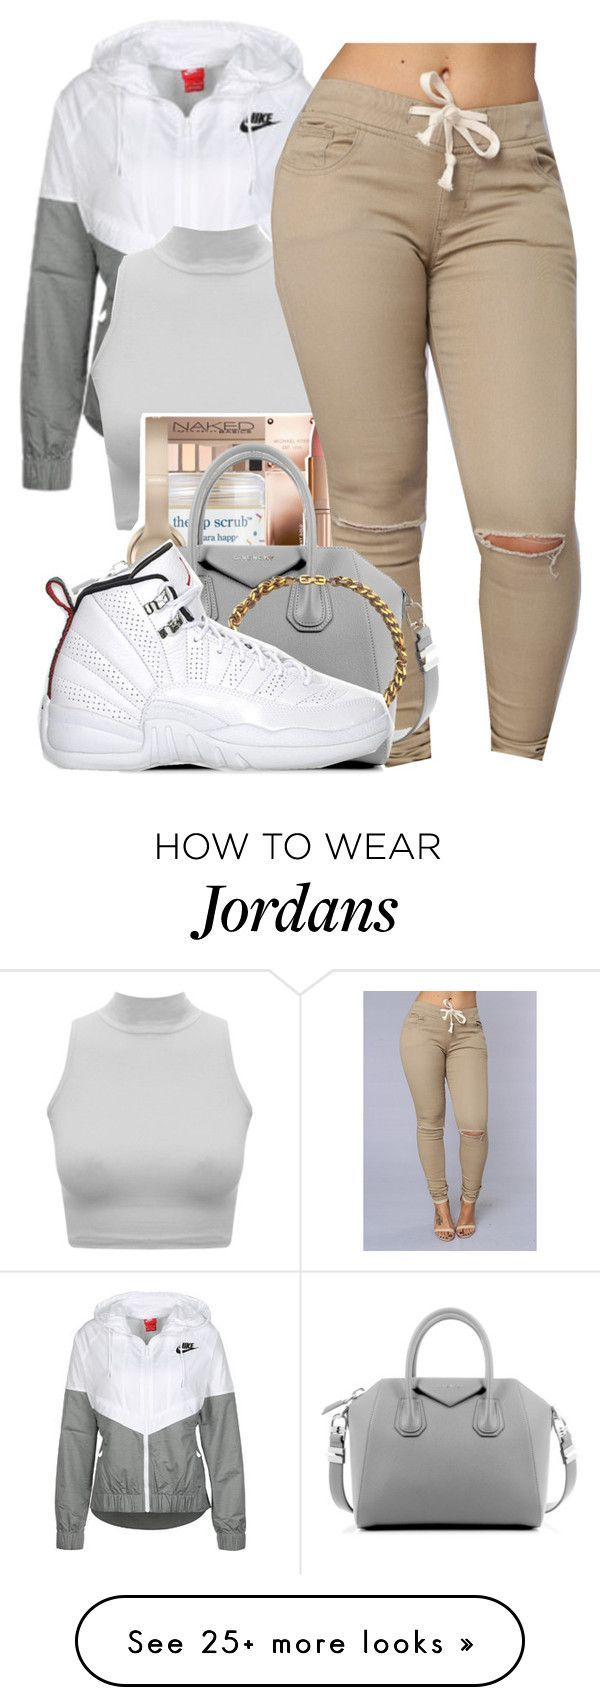 SIMPLE by alexanderbianca on Polyvore featuring NIKE, Givenchy and Retrò So…